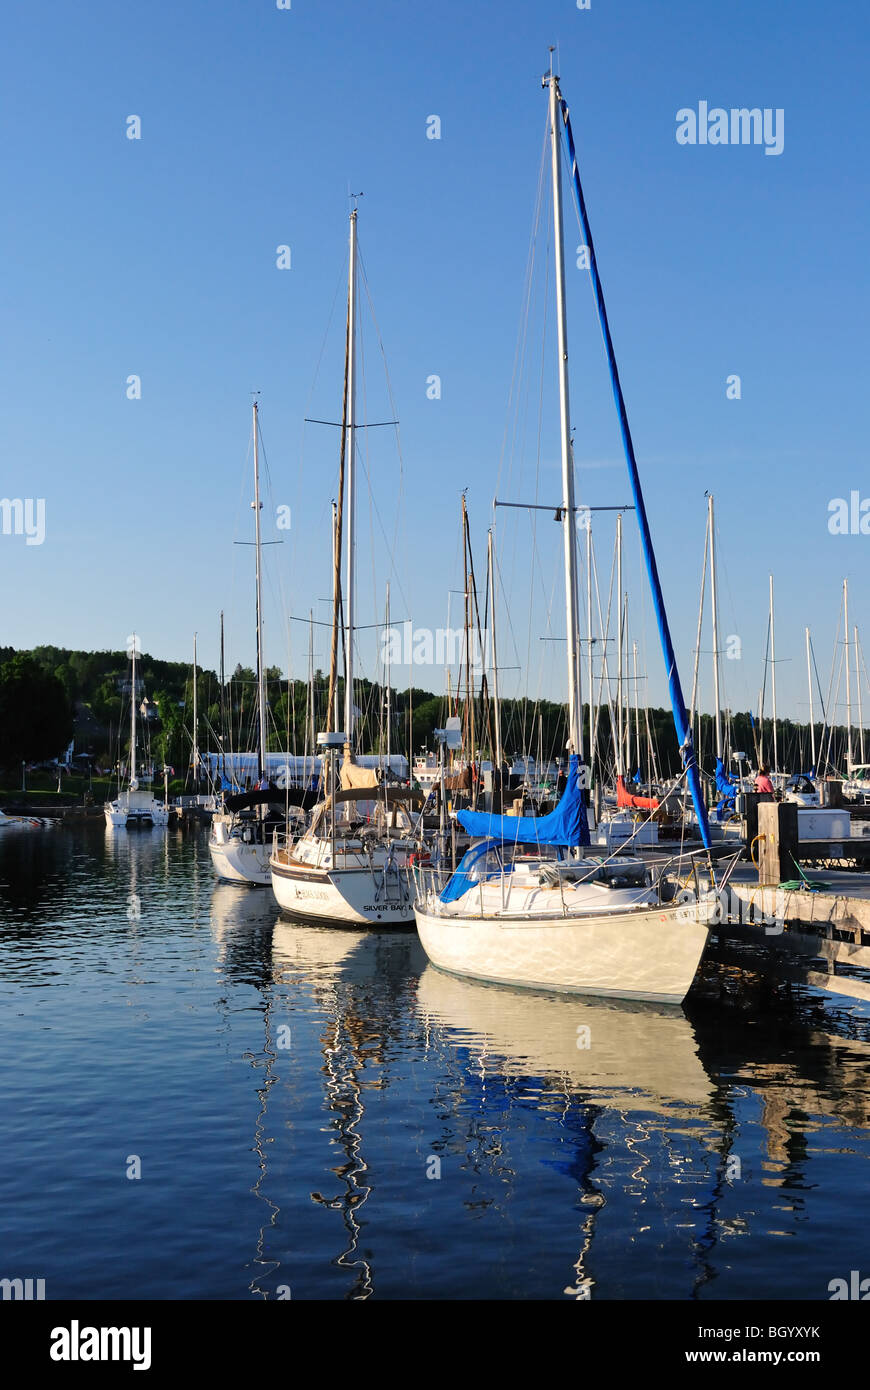 Sailing vessels at Bayfield Harbor - Stock Image